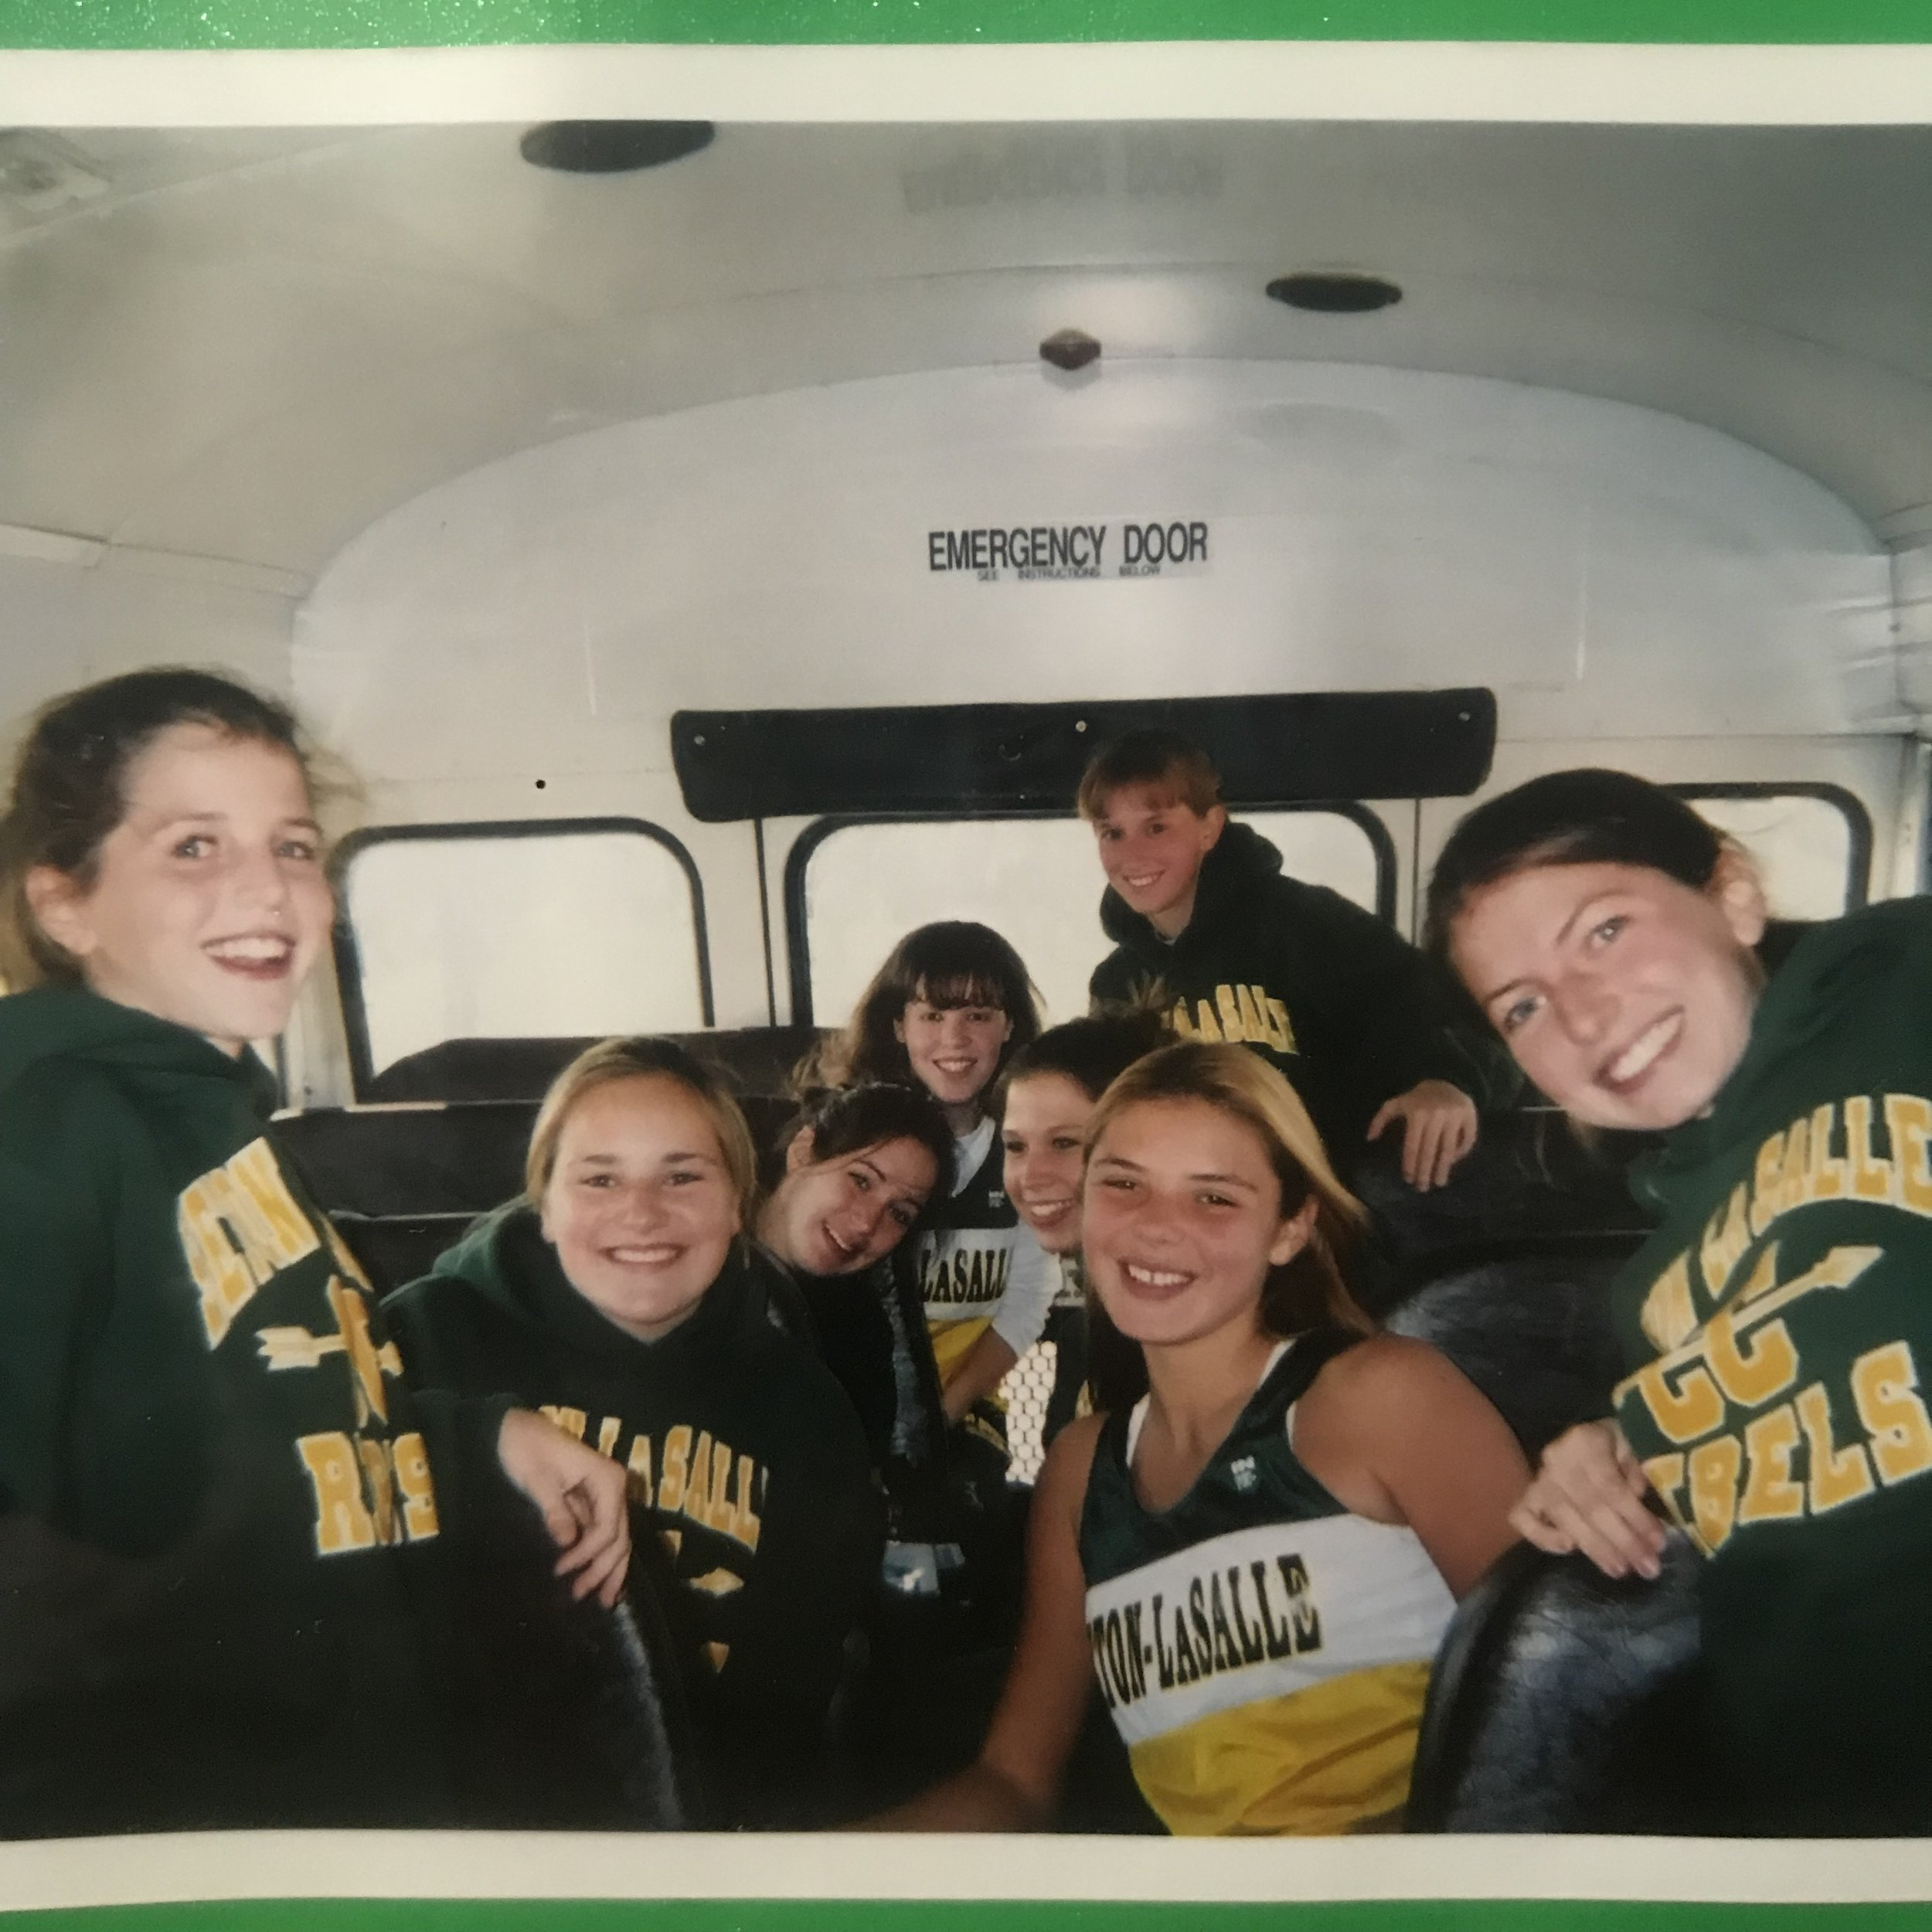 On the bus back from WPIAL XC Championships during high school: I'm on the right and my sister Jill is on the left in the foreground here.